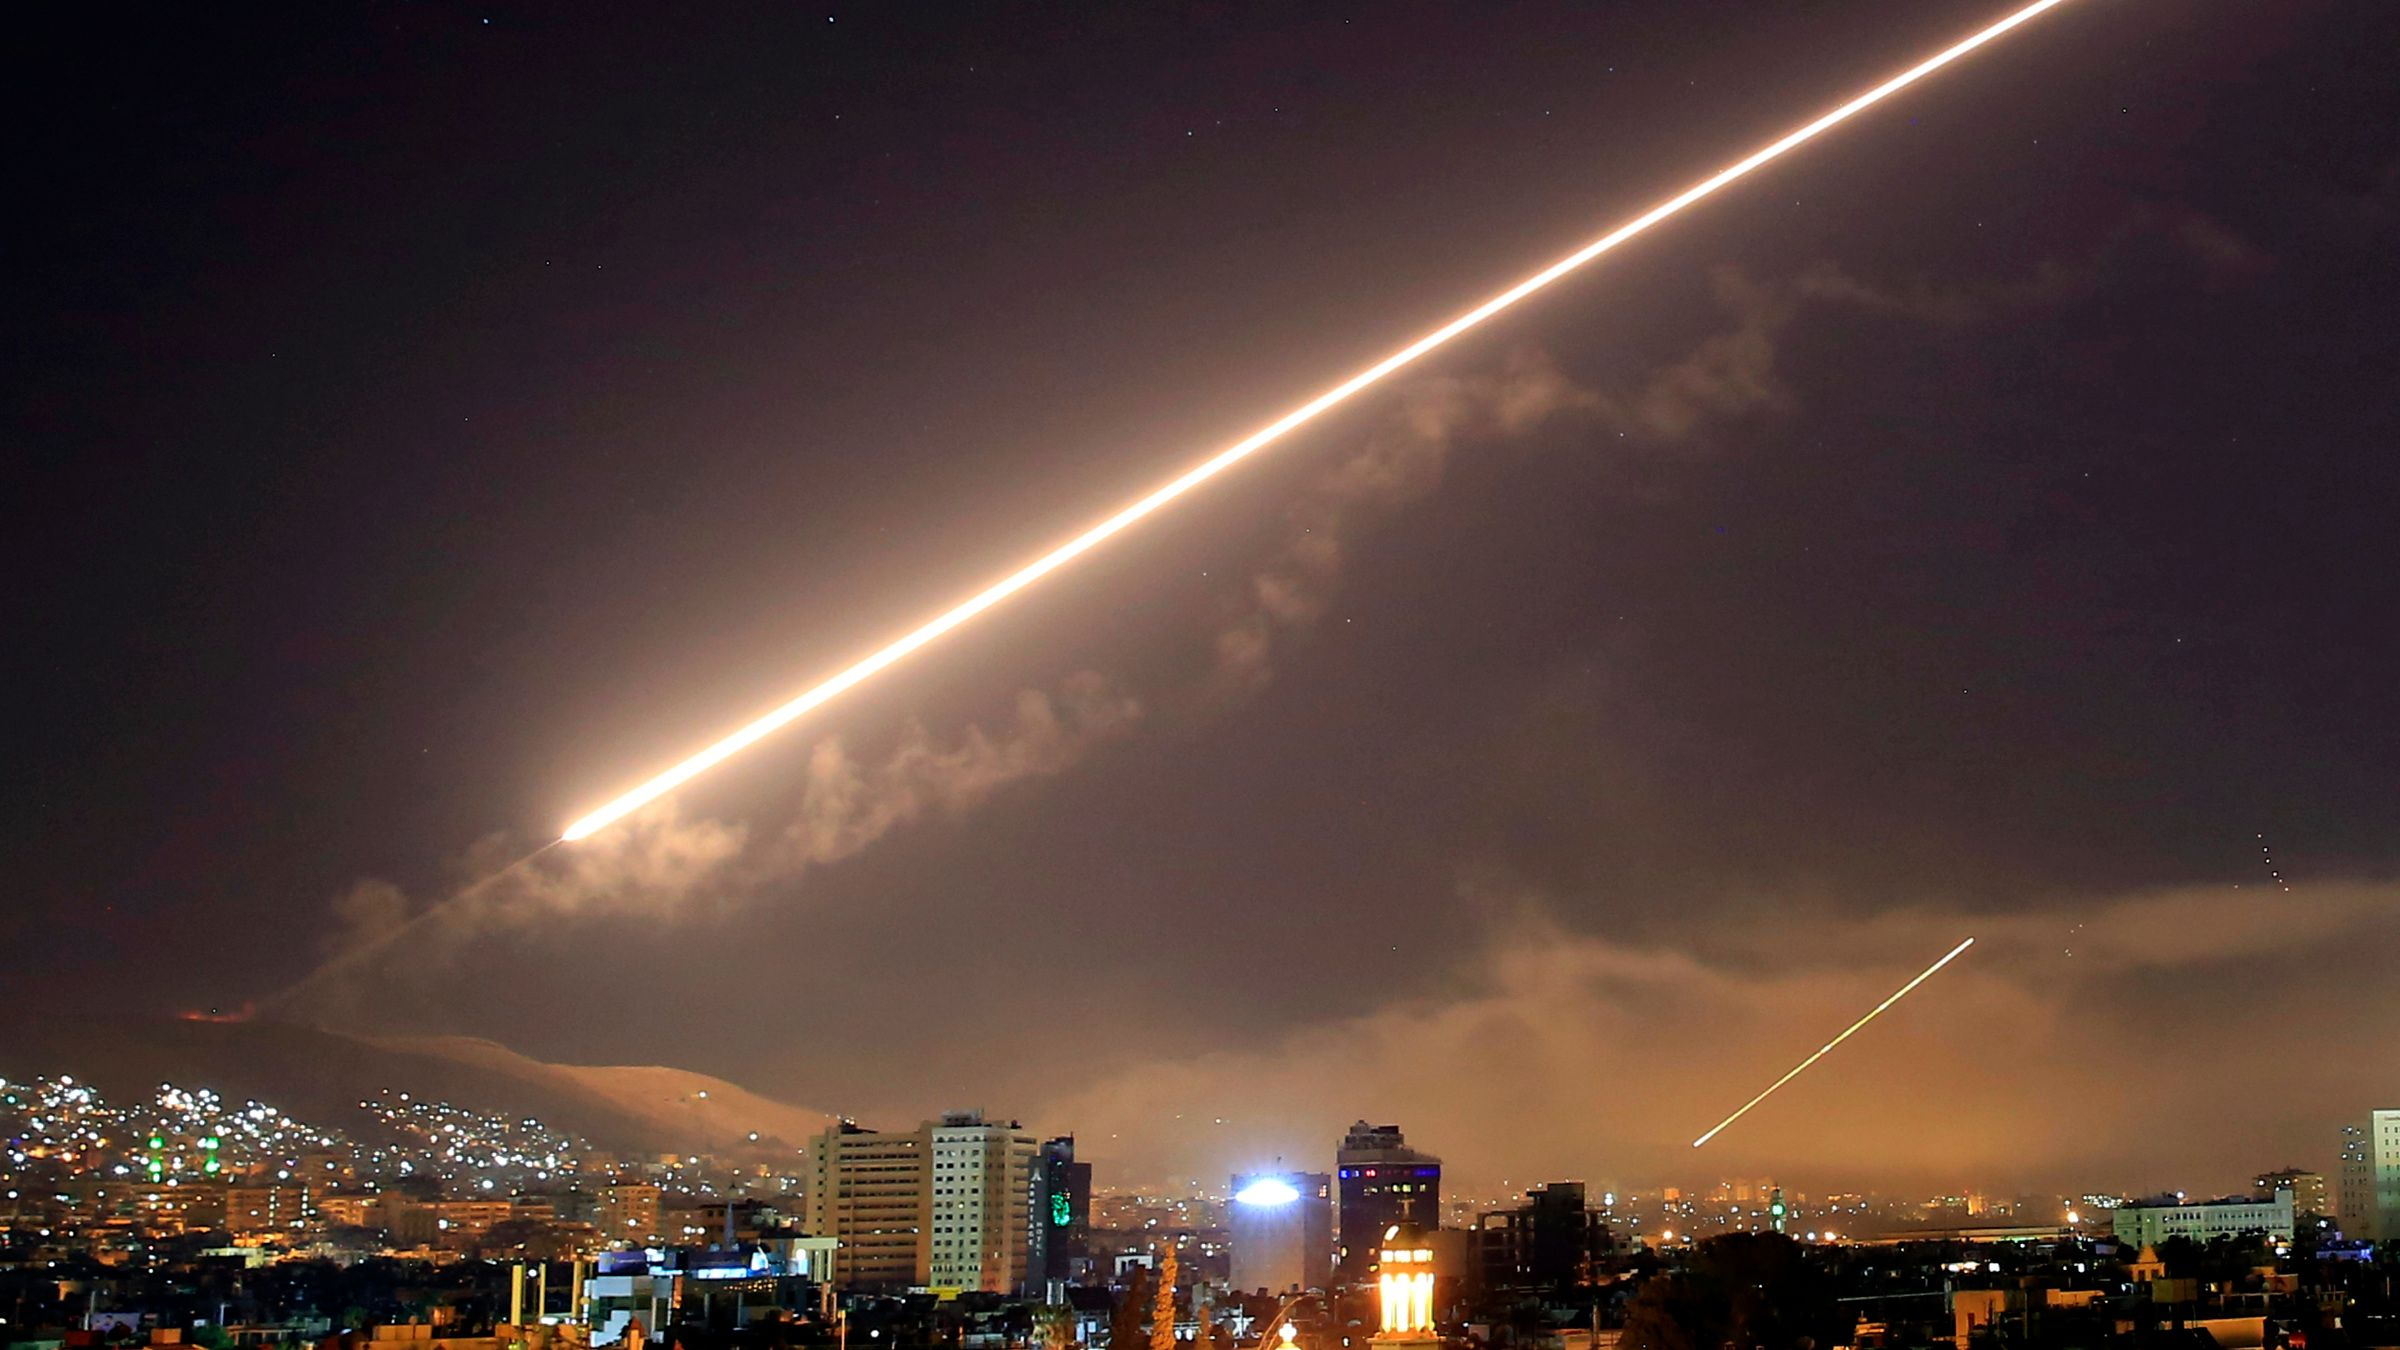 Syria missile airstrike chemical weapons Damascus Trump Assad Putin